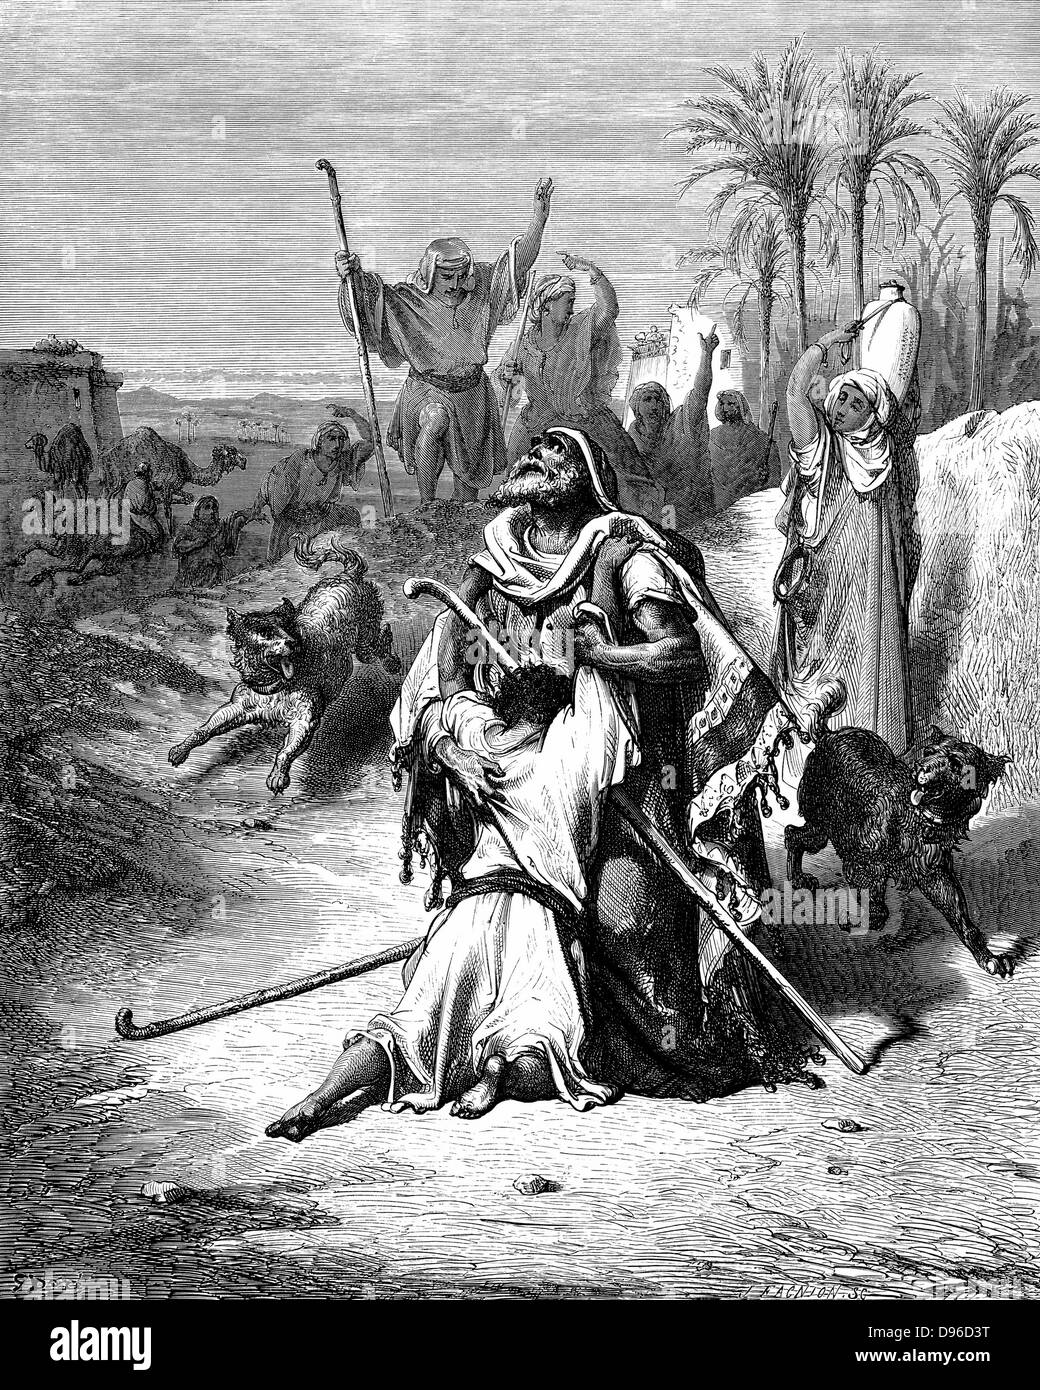 Return of the Prodigal Son 'Bible' Luke 15:20. From Gustave Dore illustrated 'Bible' 1865-6. Wood - Stock Image